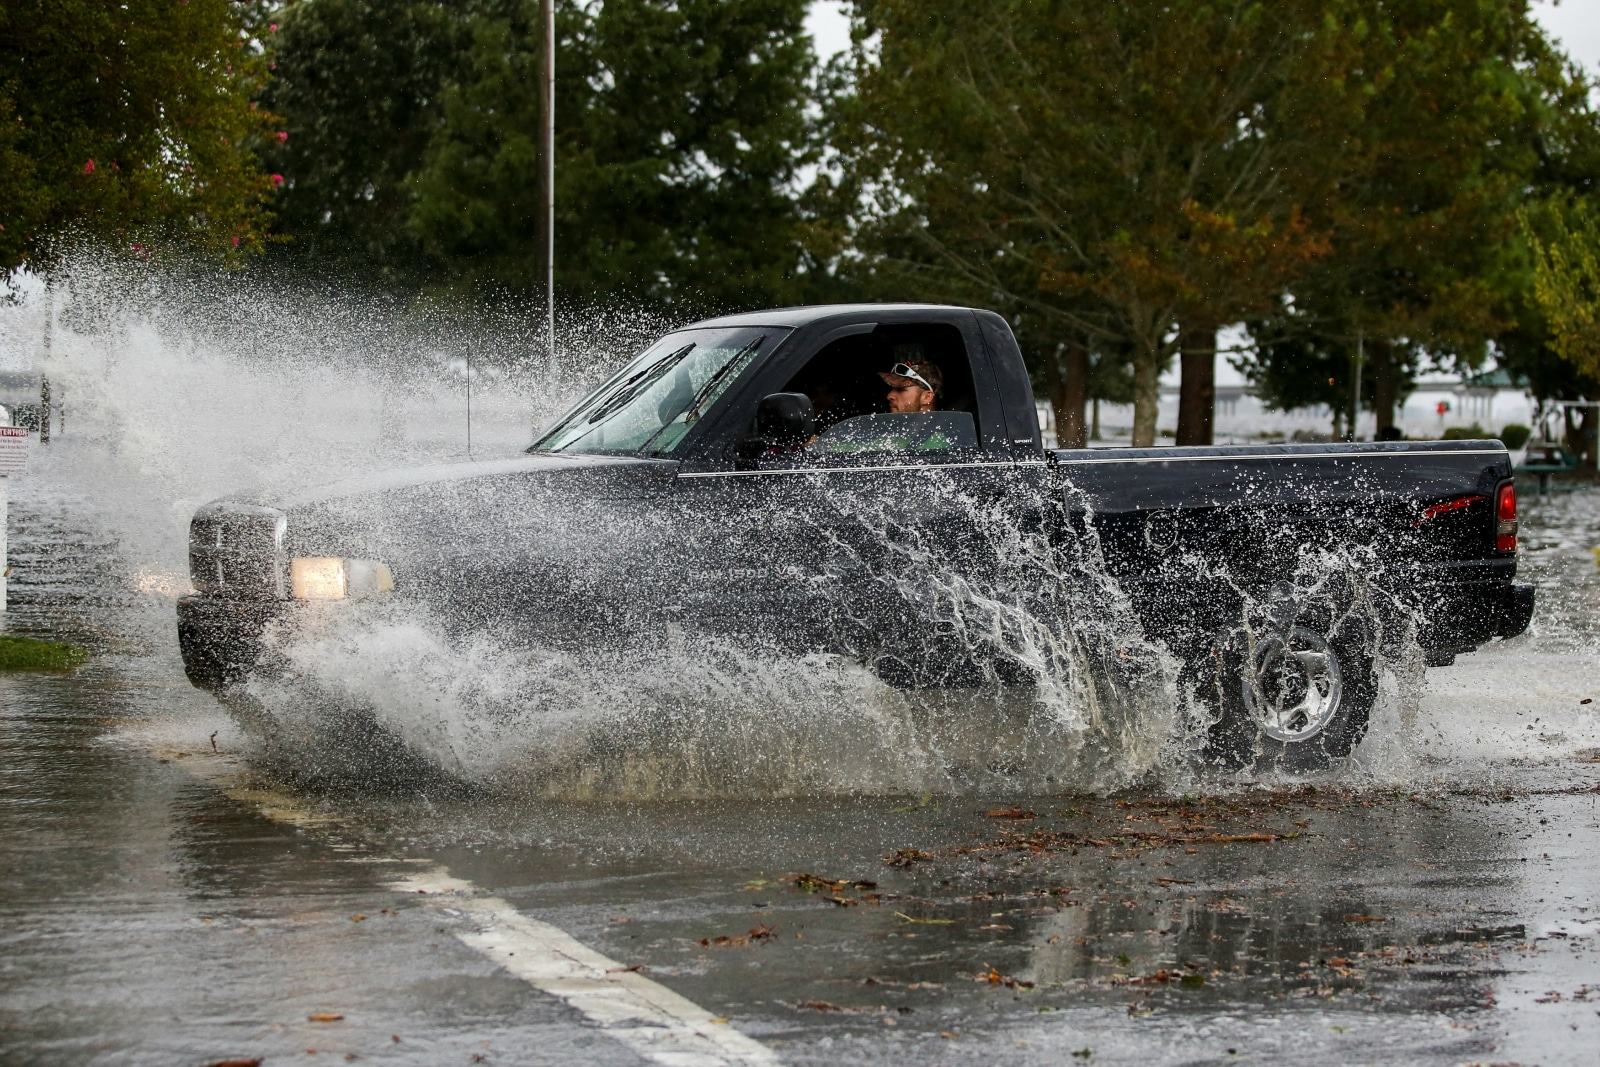 A man drives his car around the flooded Union Point Park Complex as the Hurricane Florence comes ashore in New Bern, North Carolina, US. September 13, 2018. REUTERS/Eduardo Munoz